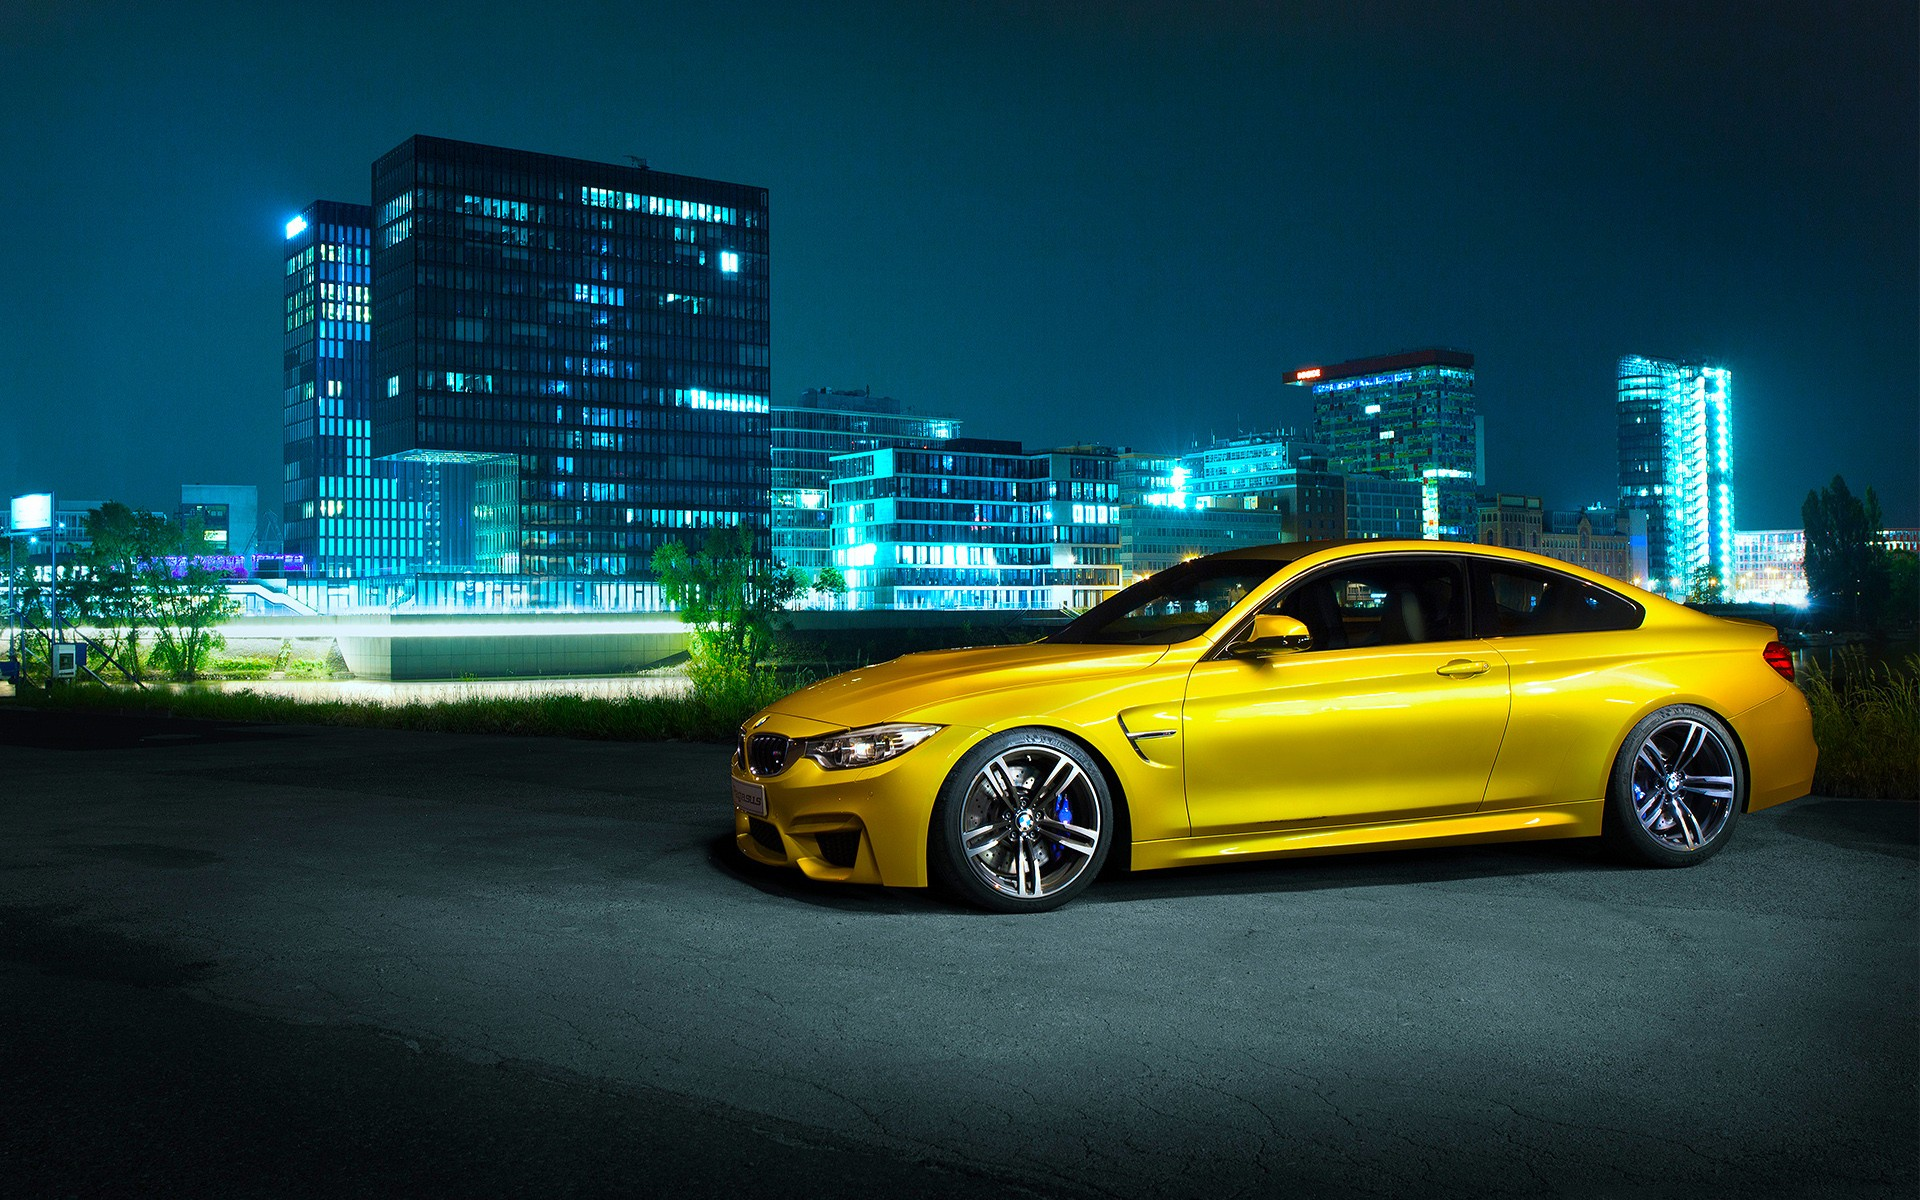 BMW F82 M4 Coupe 2 Wallpaper | HD Car Wallpapers | ID #5679